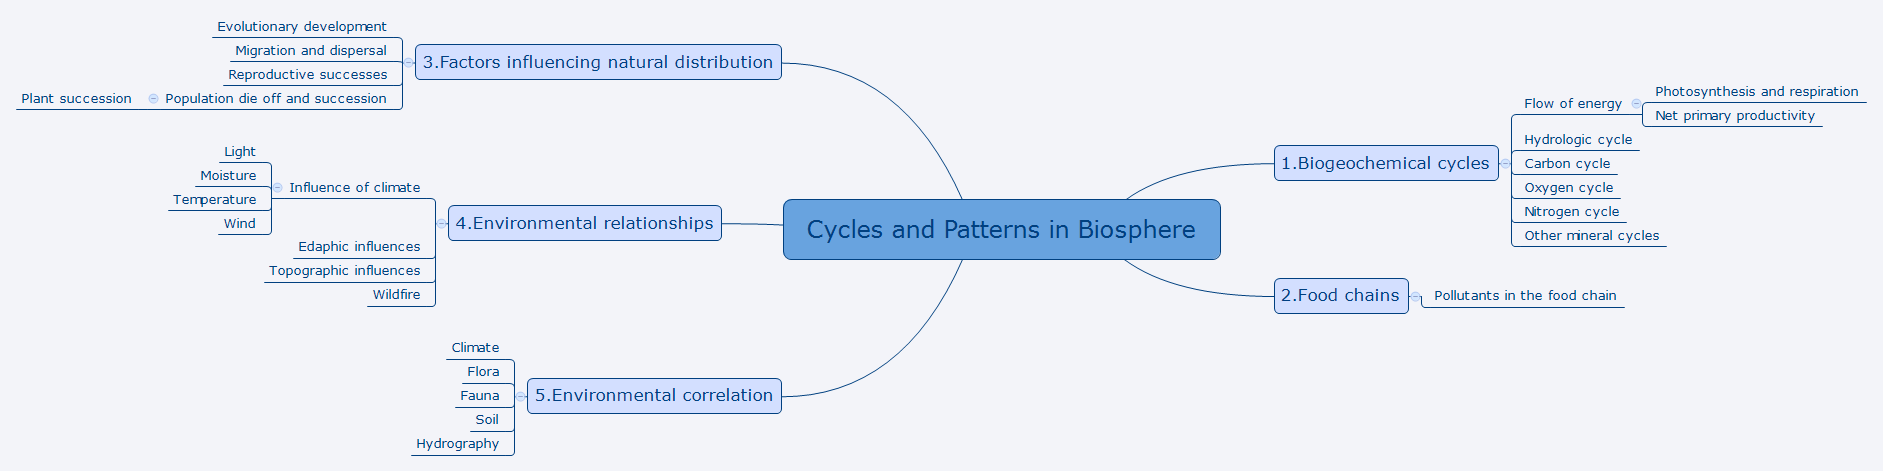 Cycles and Patterns in Biosphere